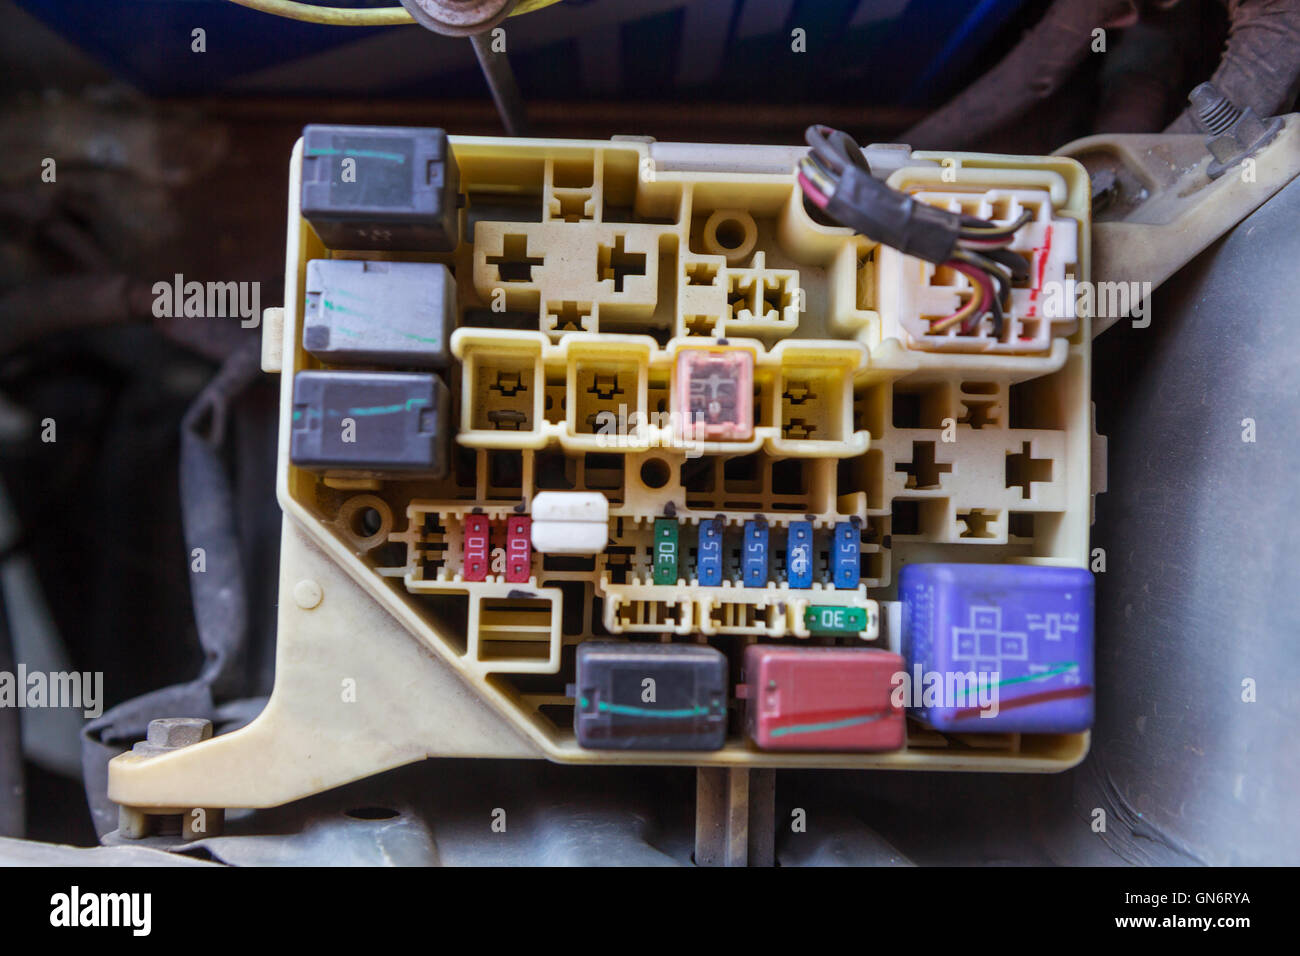 Old Fuses Fuse Box Stock Photos Images Car Jumper The Man Opening Of Image